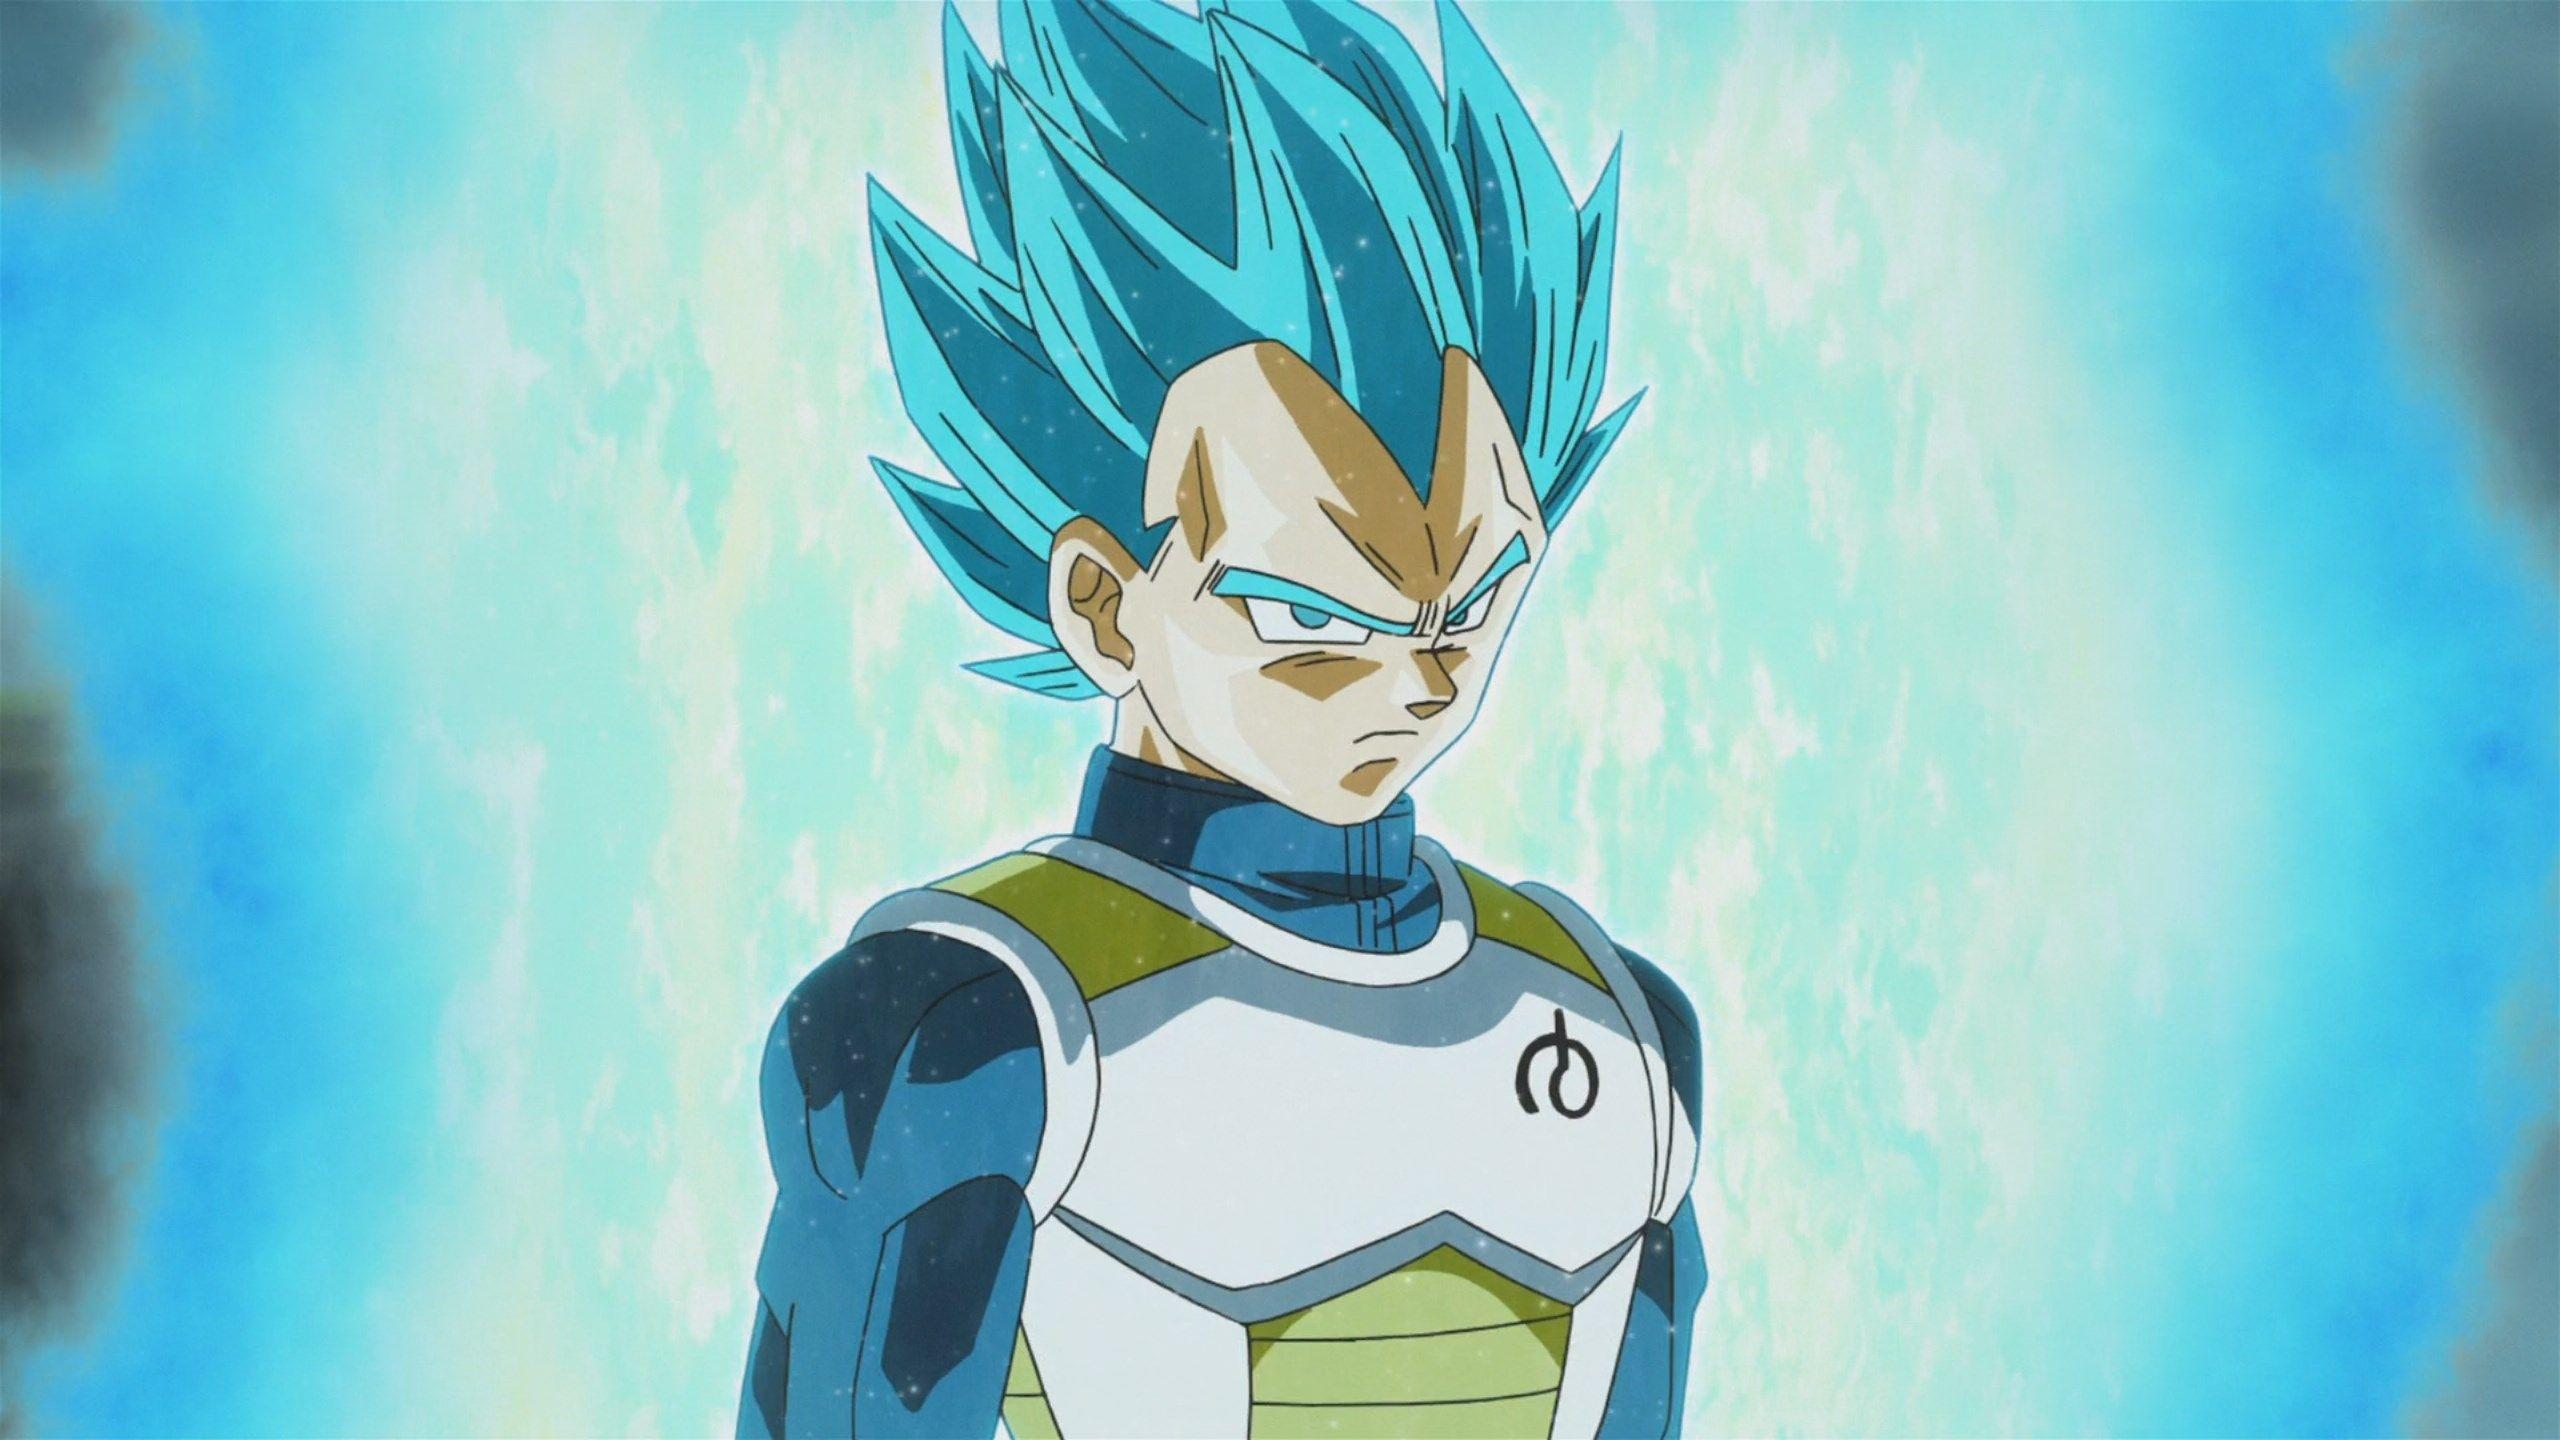 dragon ball super vegeta wallpaper high quality resolution